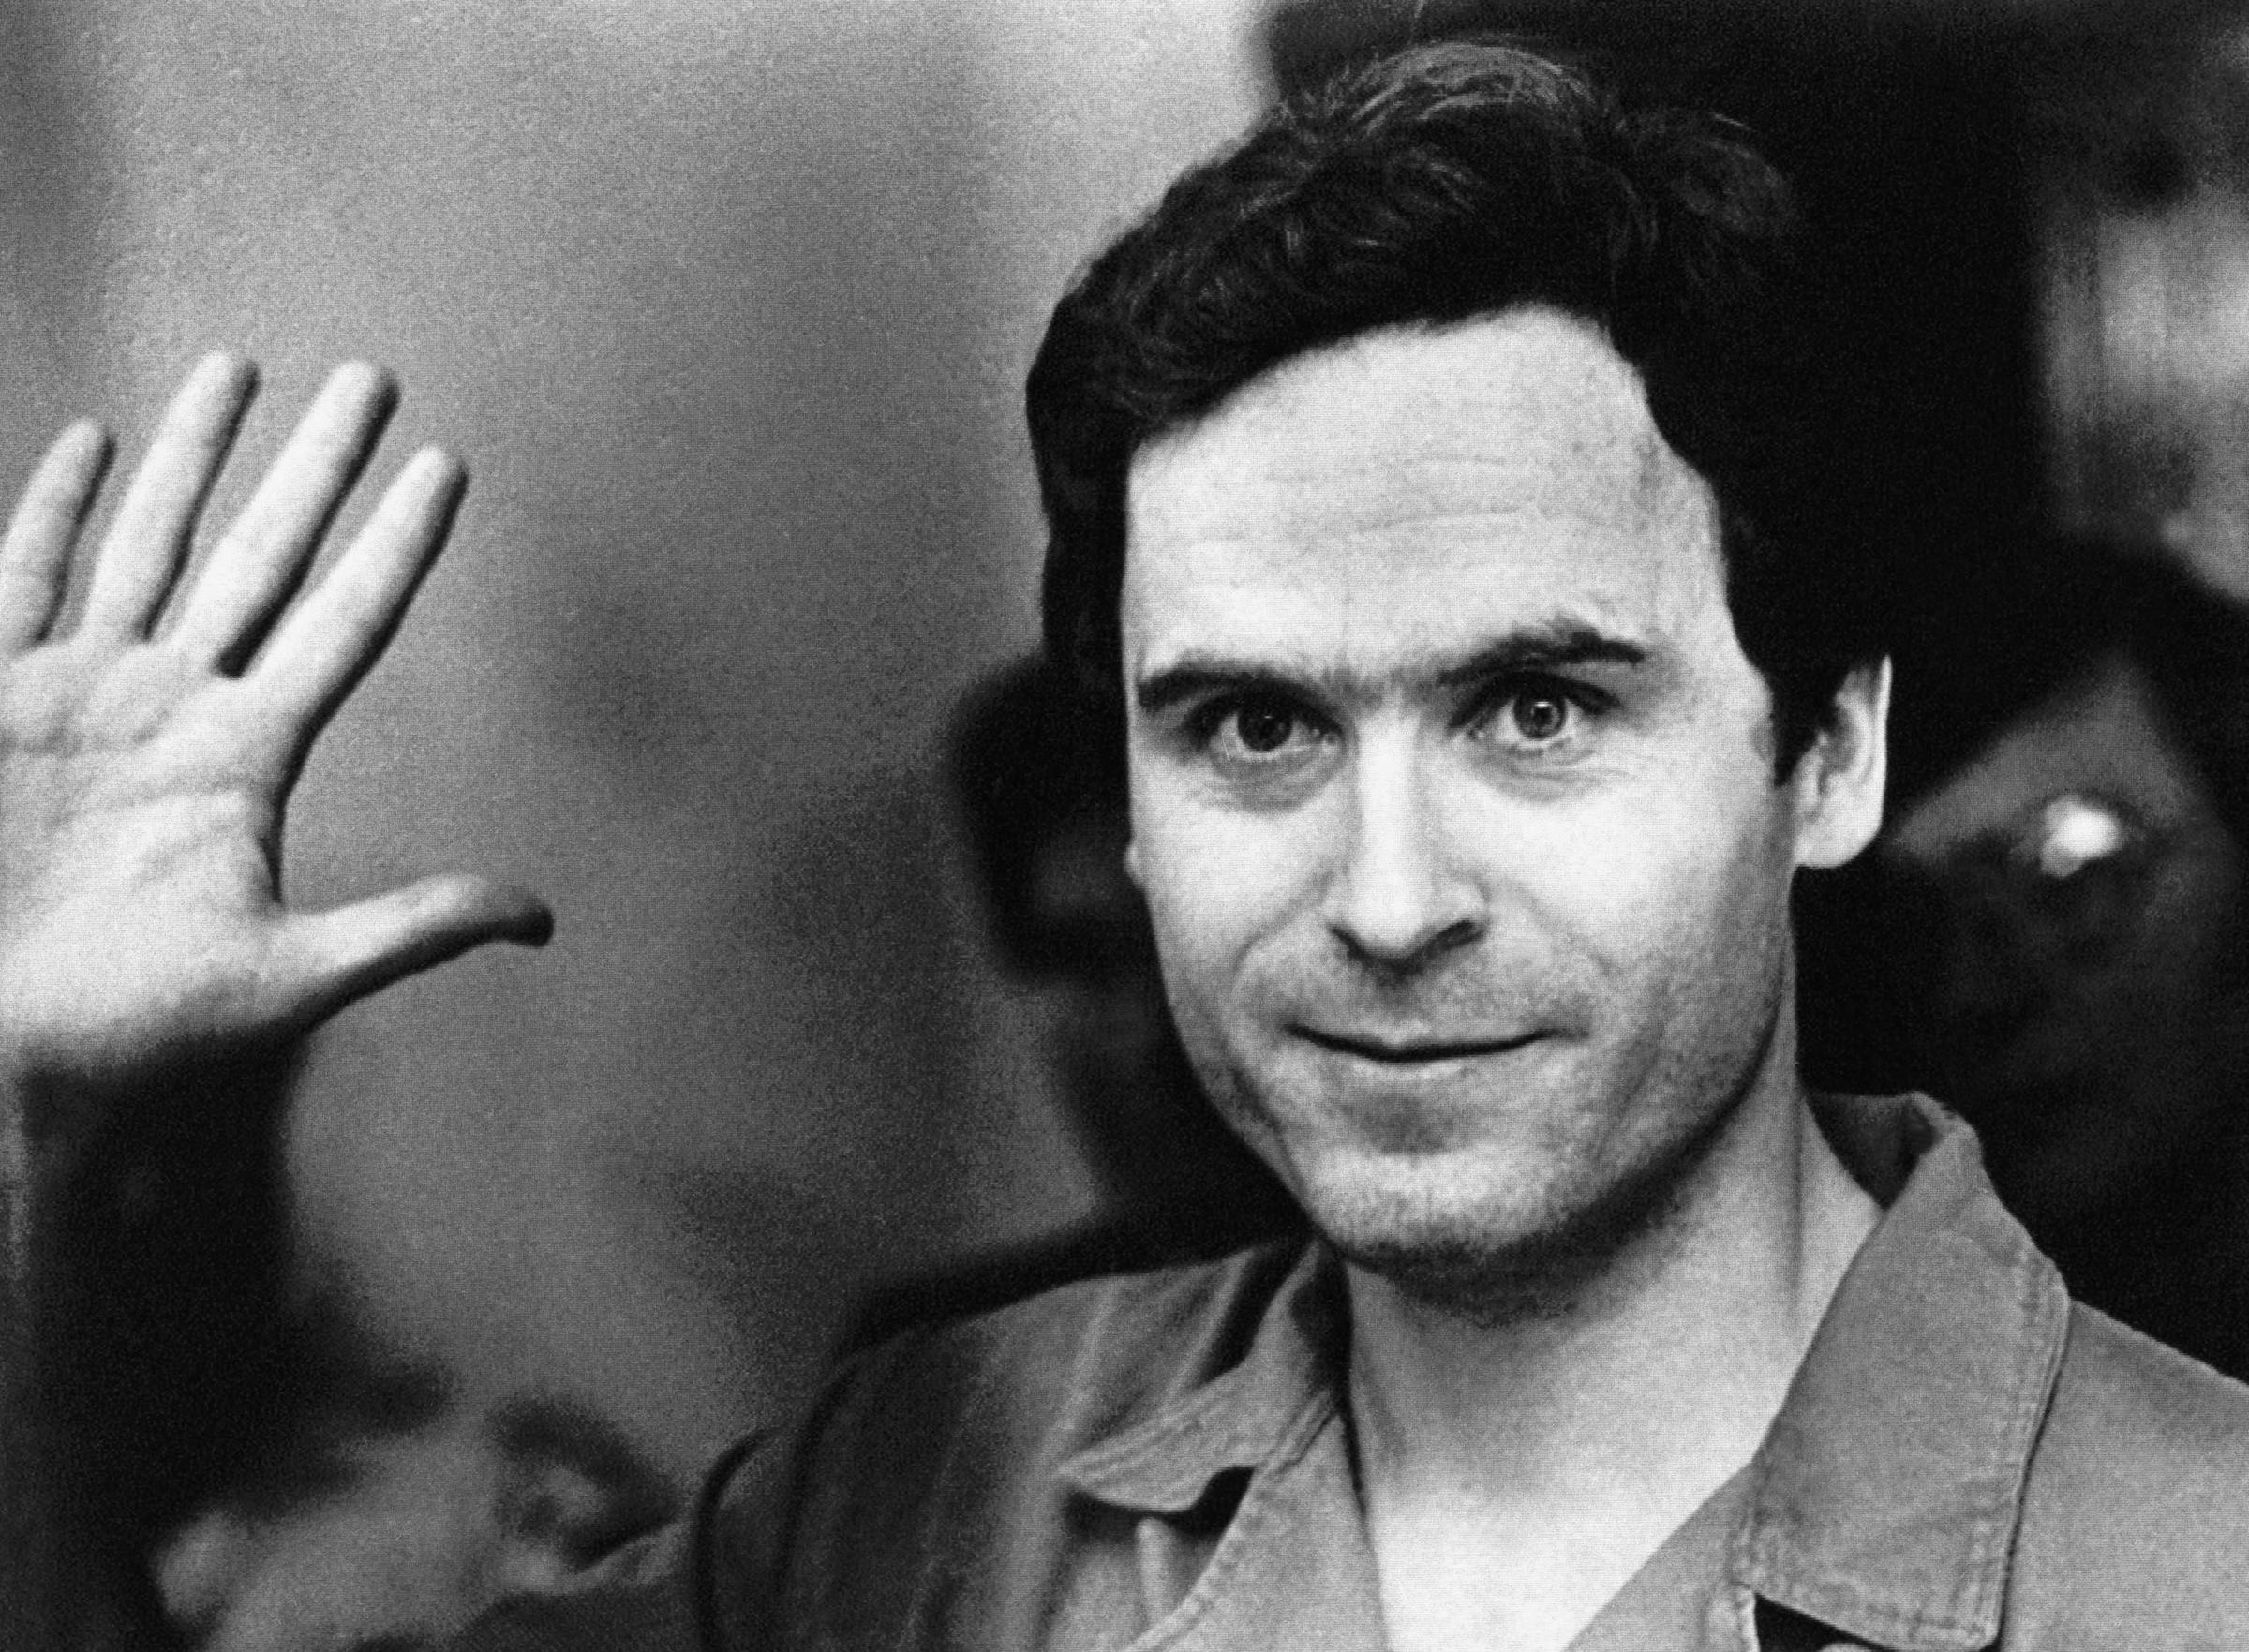 Creepy This story about Ted Bundy before anyone knew he was